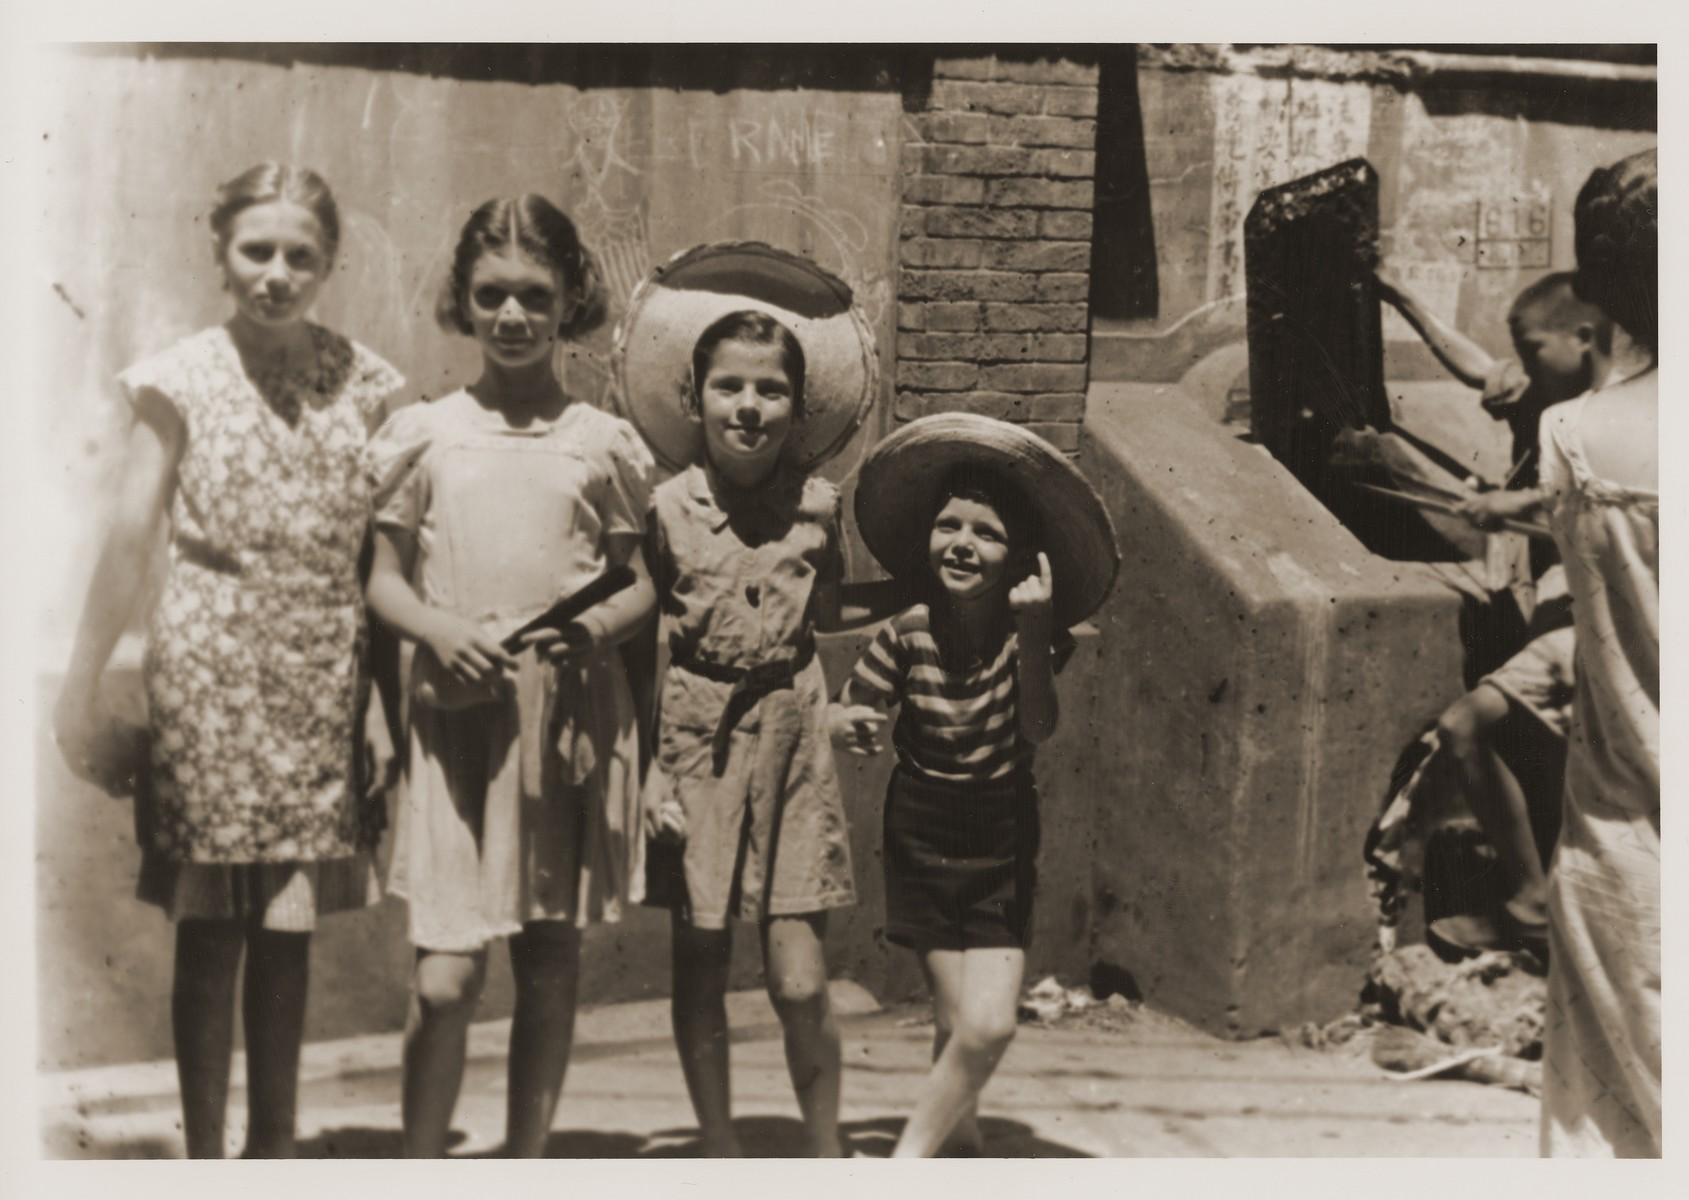 Jewish refugee children pose for a photograph on Tongshan Road.     Pictured from left to right are [unidentified girl], Olga (Irene) and Brigitte Gutstadt, and Harry Fiedler.  In the background, a child digs through garbage in search of food.